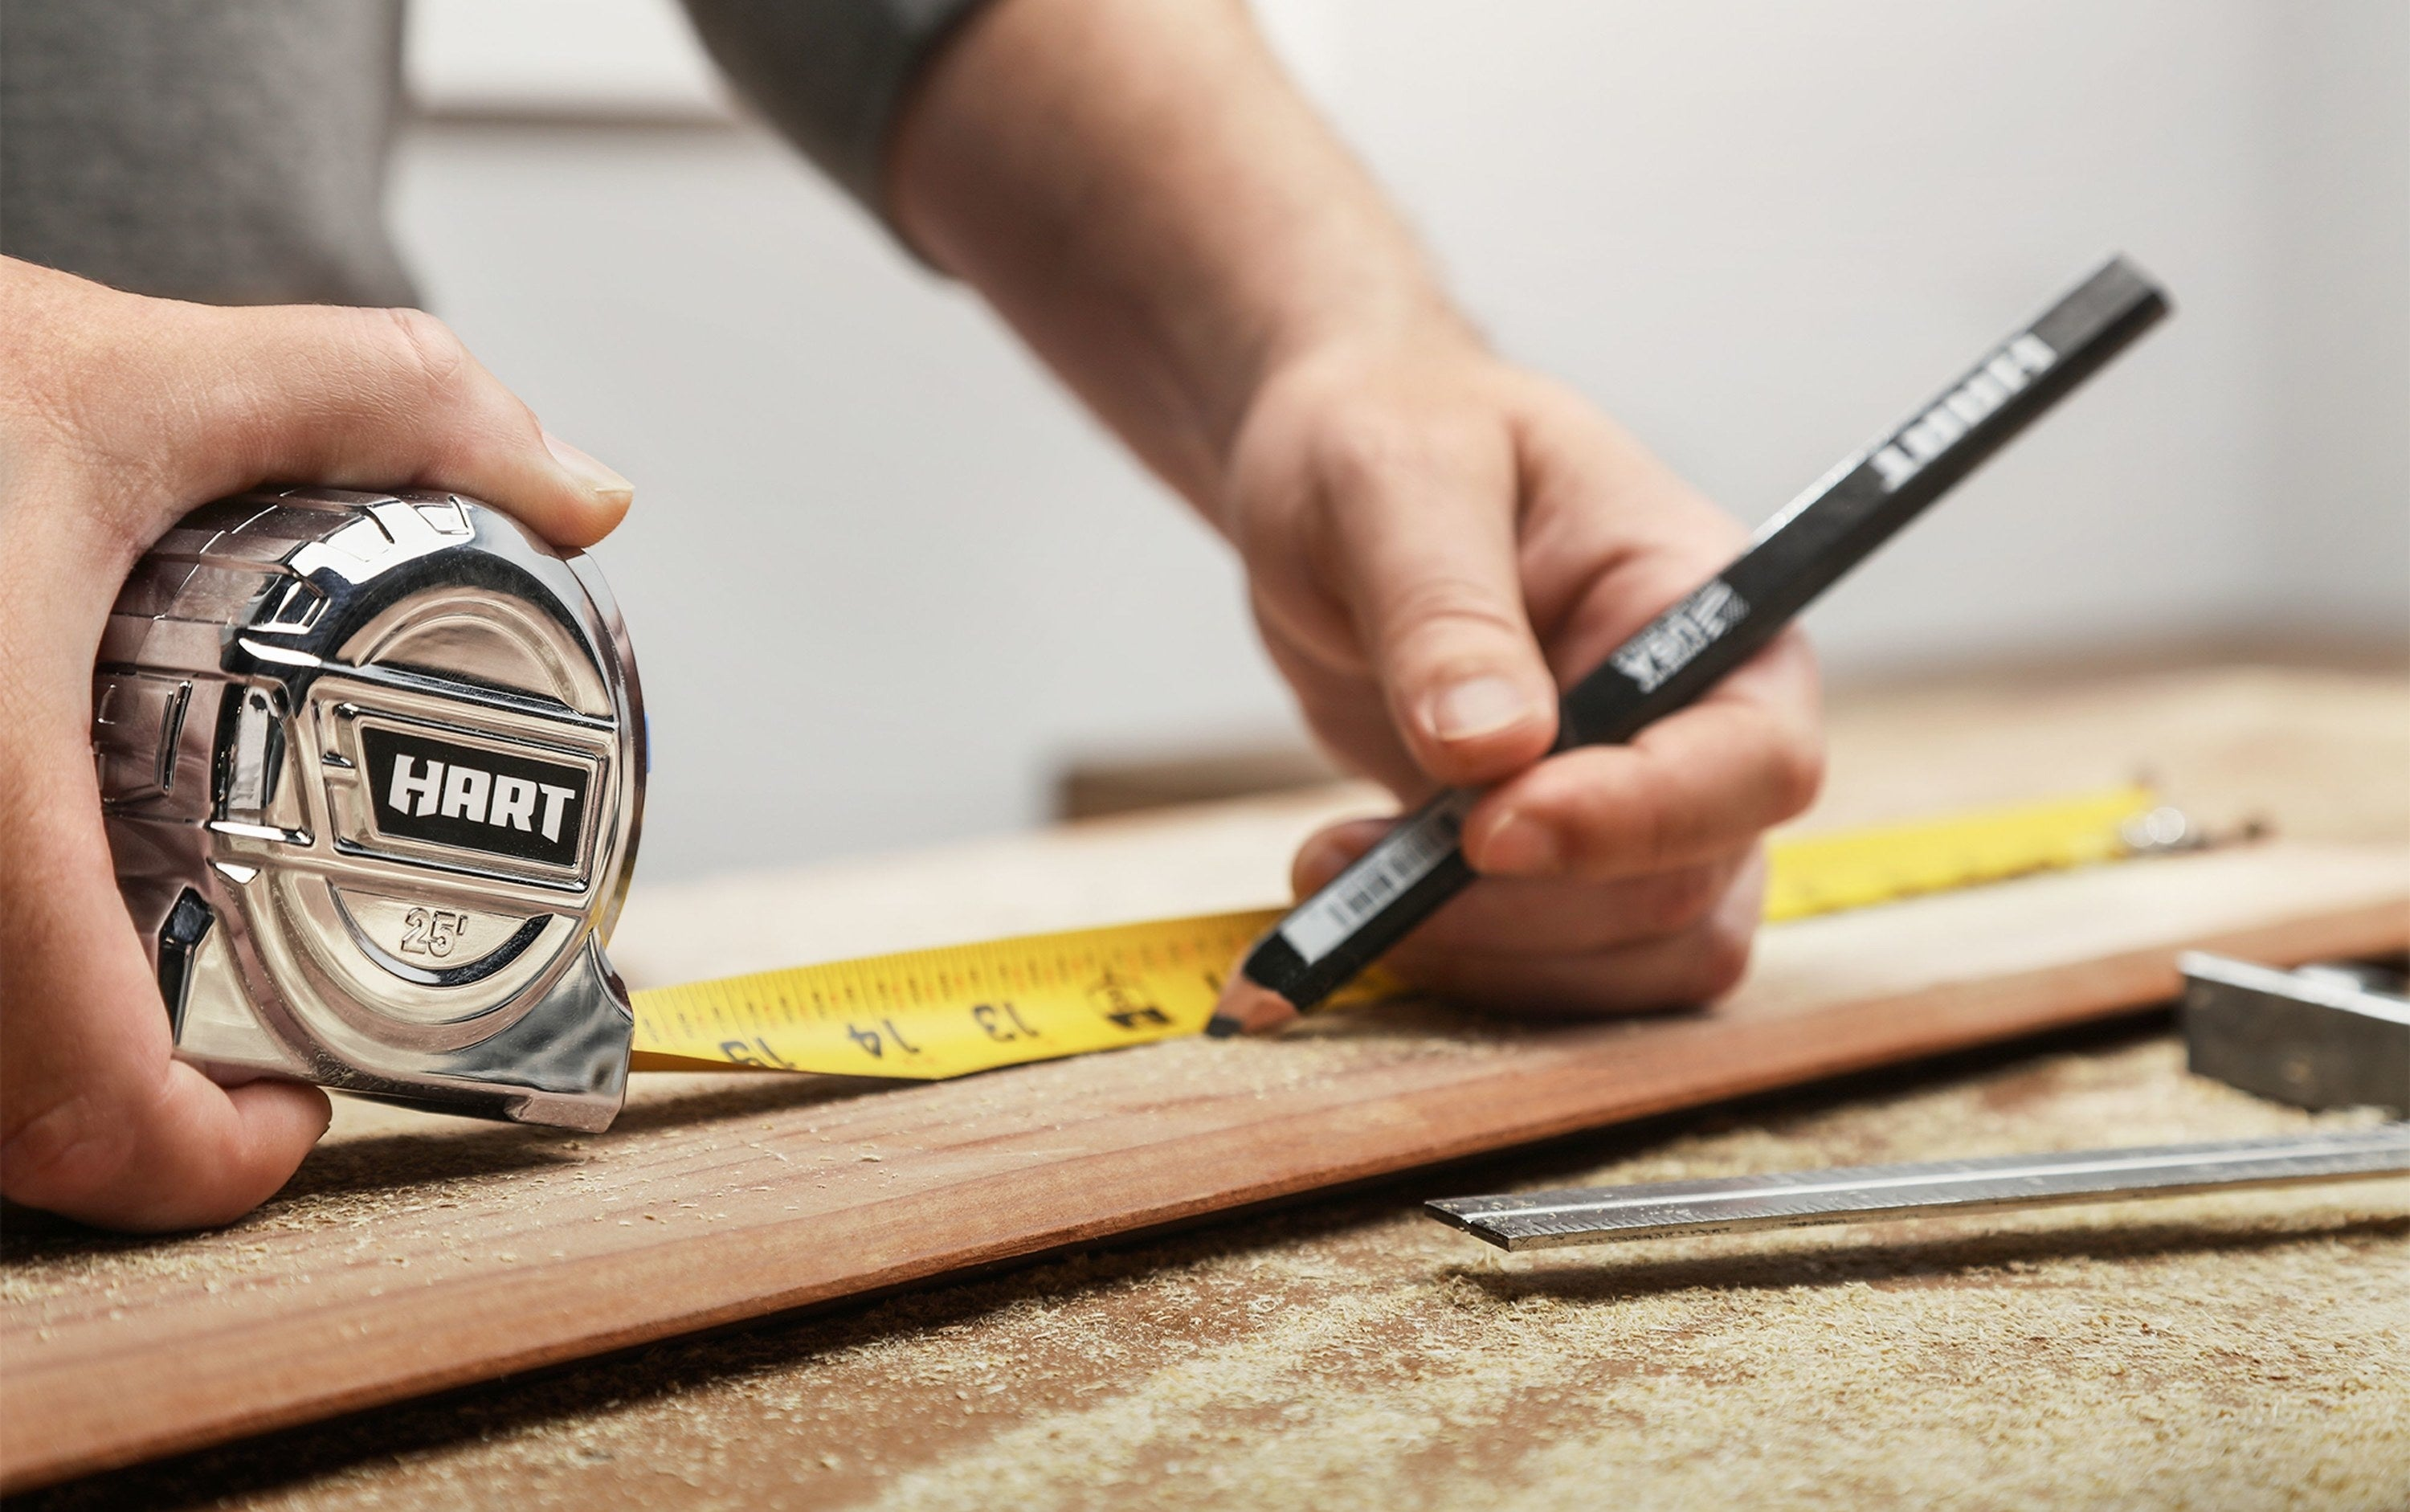 The25-foot chrome measuring tape